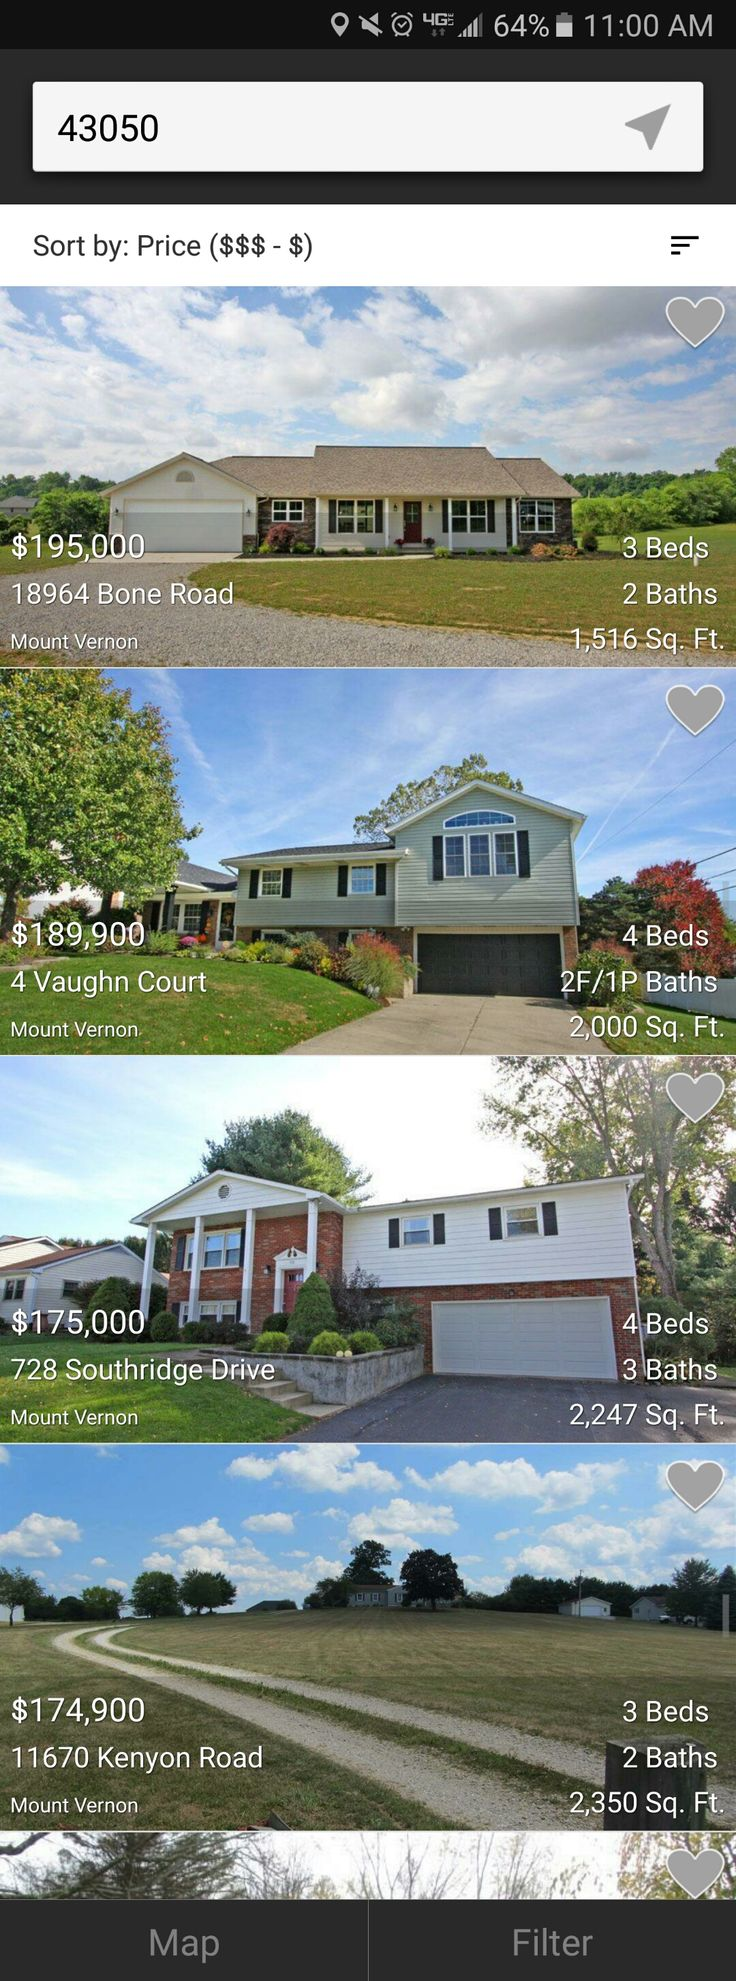 Your search for homes just became a lot easier with the Mount Vernon Ohio Real Estate App for Android. This app is simple to use and easy to read. Click HERE:  https://play.google.com/store/apps/details?id=com.snapp_dev.sam_miller_remax_stars  to download your FREE Mount Vernon Ohio Real Estate App on the Google Play Store. Brought to you by Mount Vernon Ohio REALTOR Sam Miller of REMAX Stars Realty 740-397-7800. #MountVernonOhio